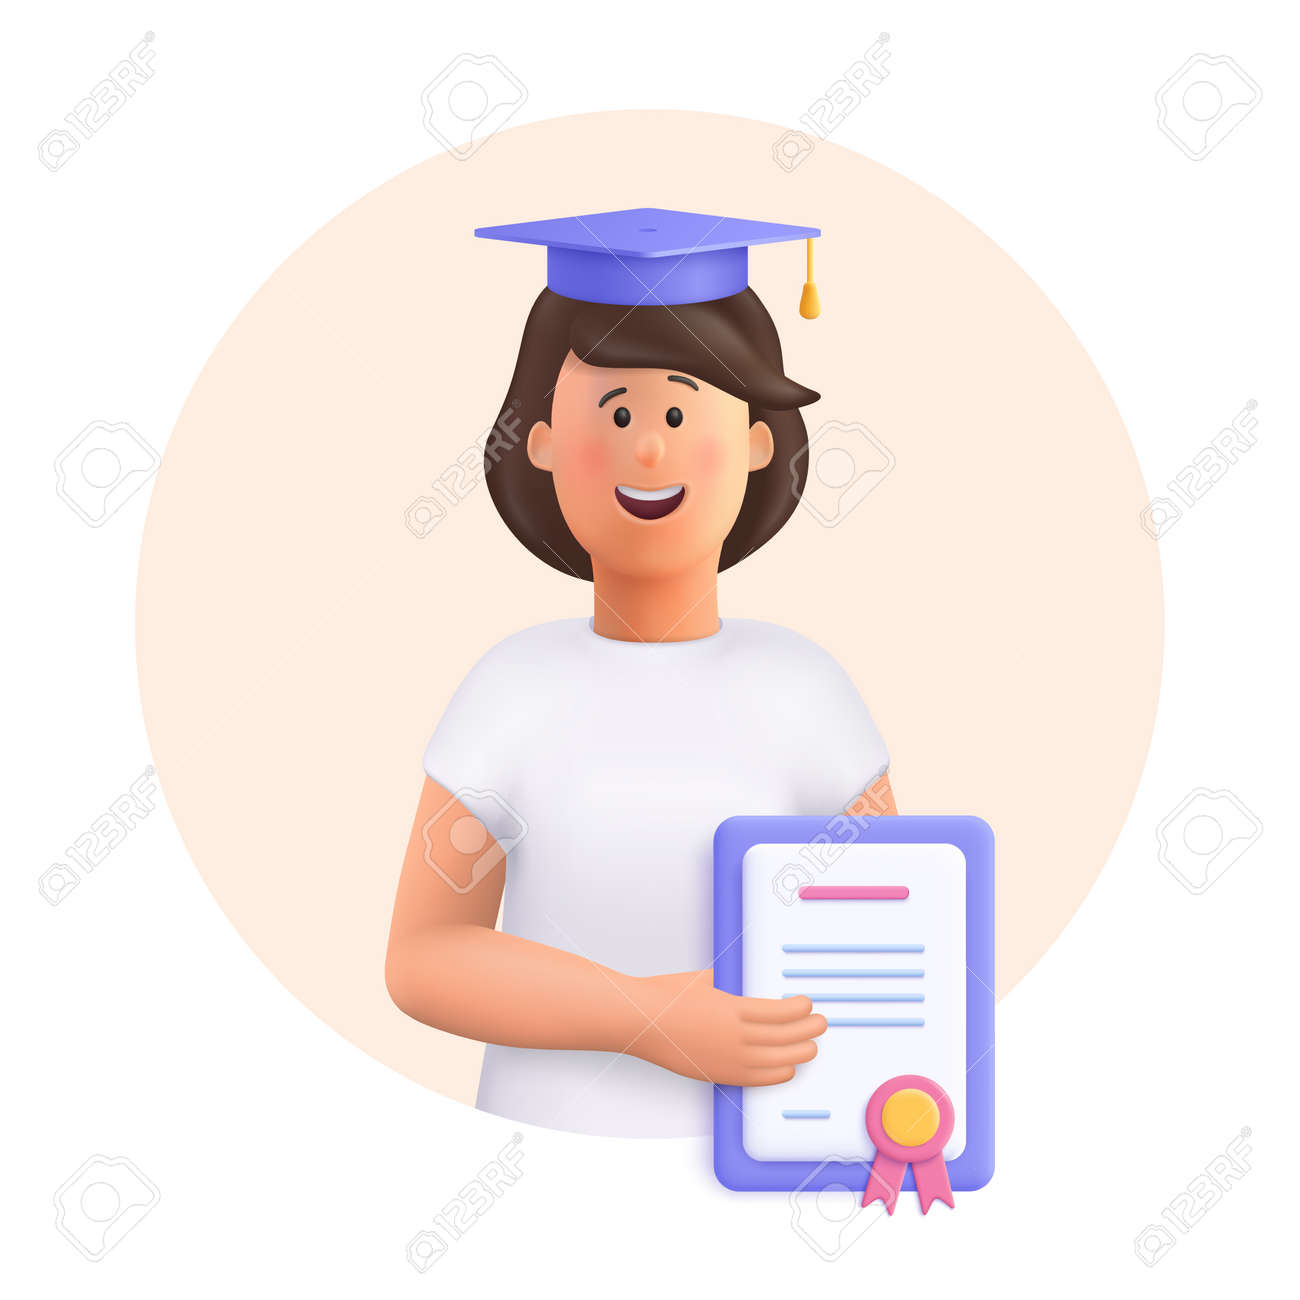 Young woman Jane - student in graduation cap and robe standing, holding diploma or certificate. Academic degree and achievements. 3d vector people character illustration. - 170745476